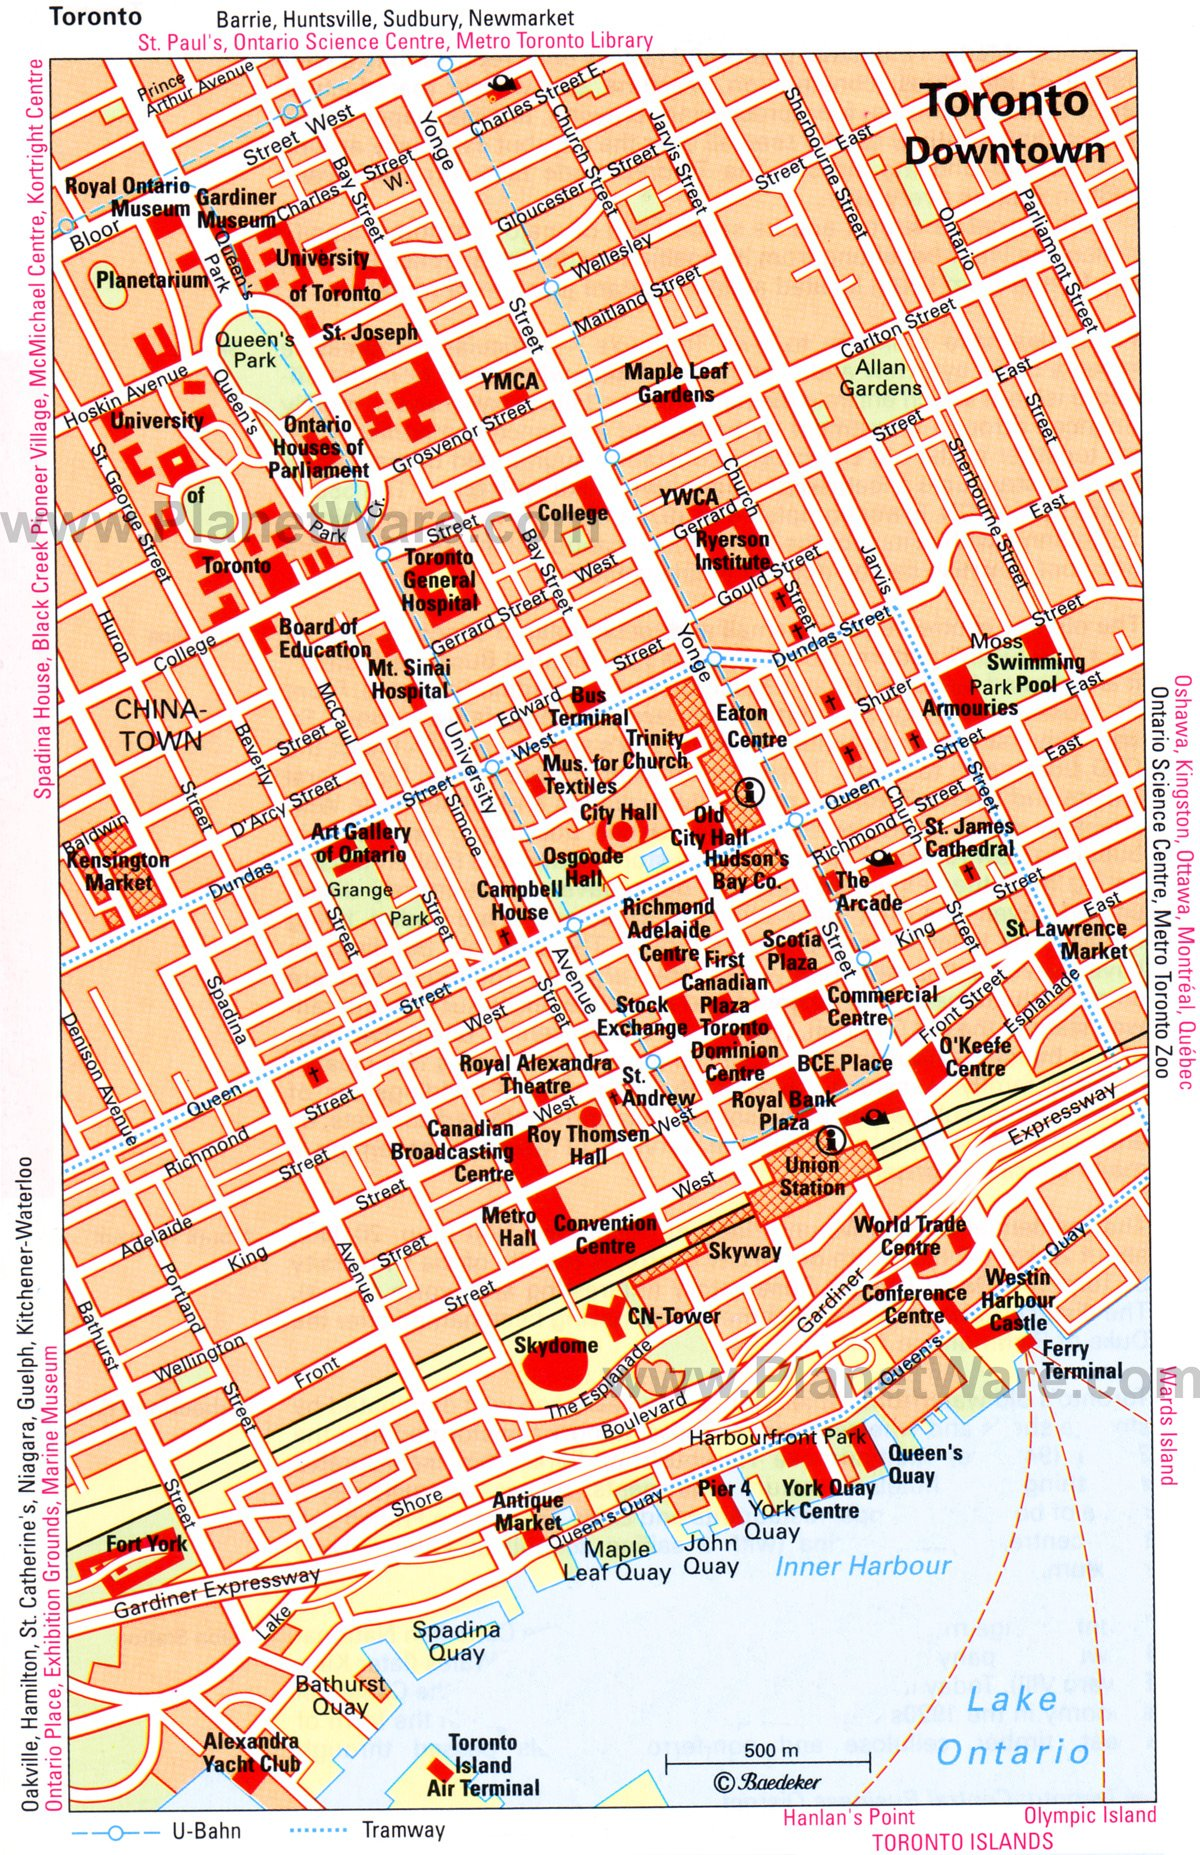 Toronto Downtown Map - Tourist Attractions